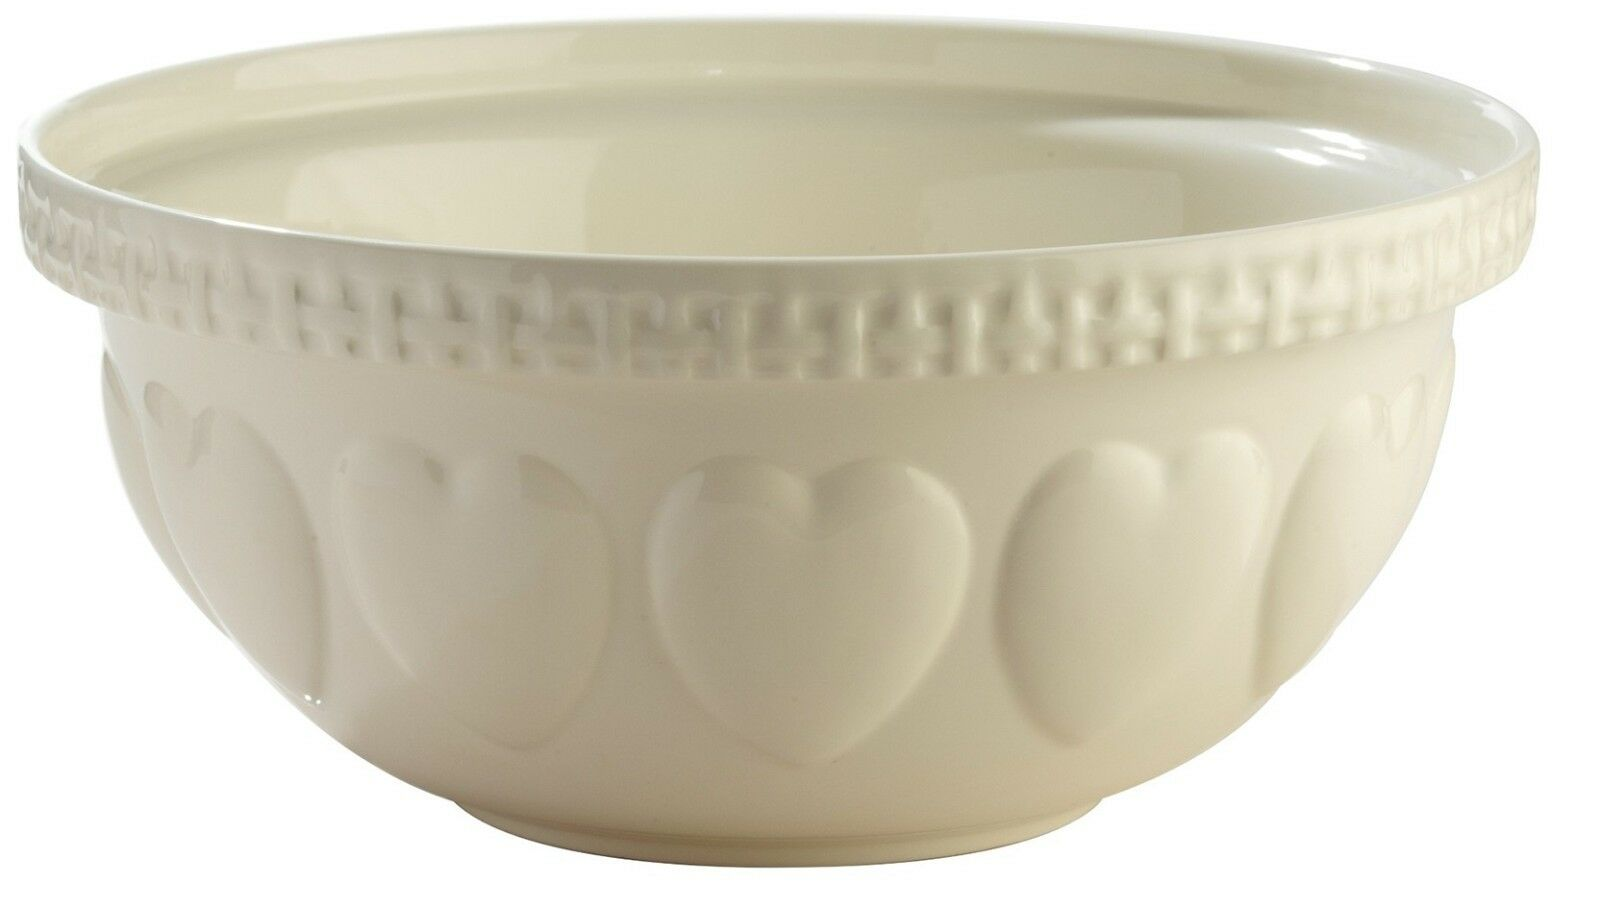 Mason Cash S12 Large 29cm Mixing Bowl CREAM with Hearts Deep Mixing Bowl